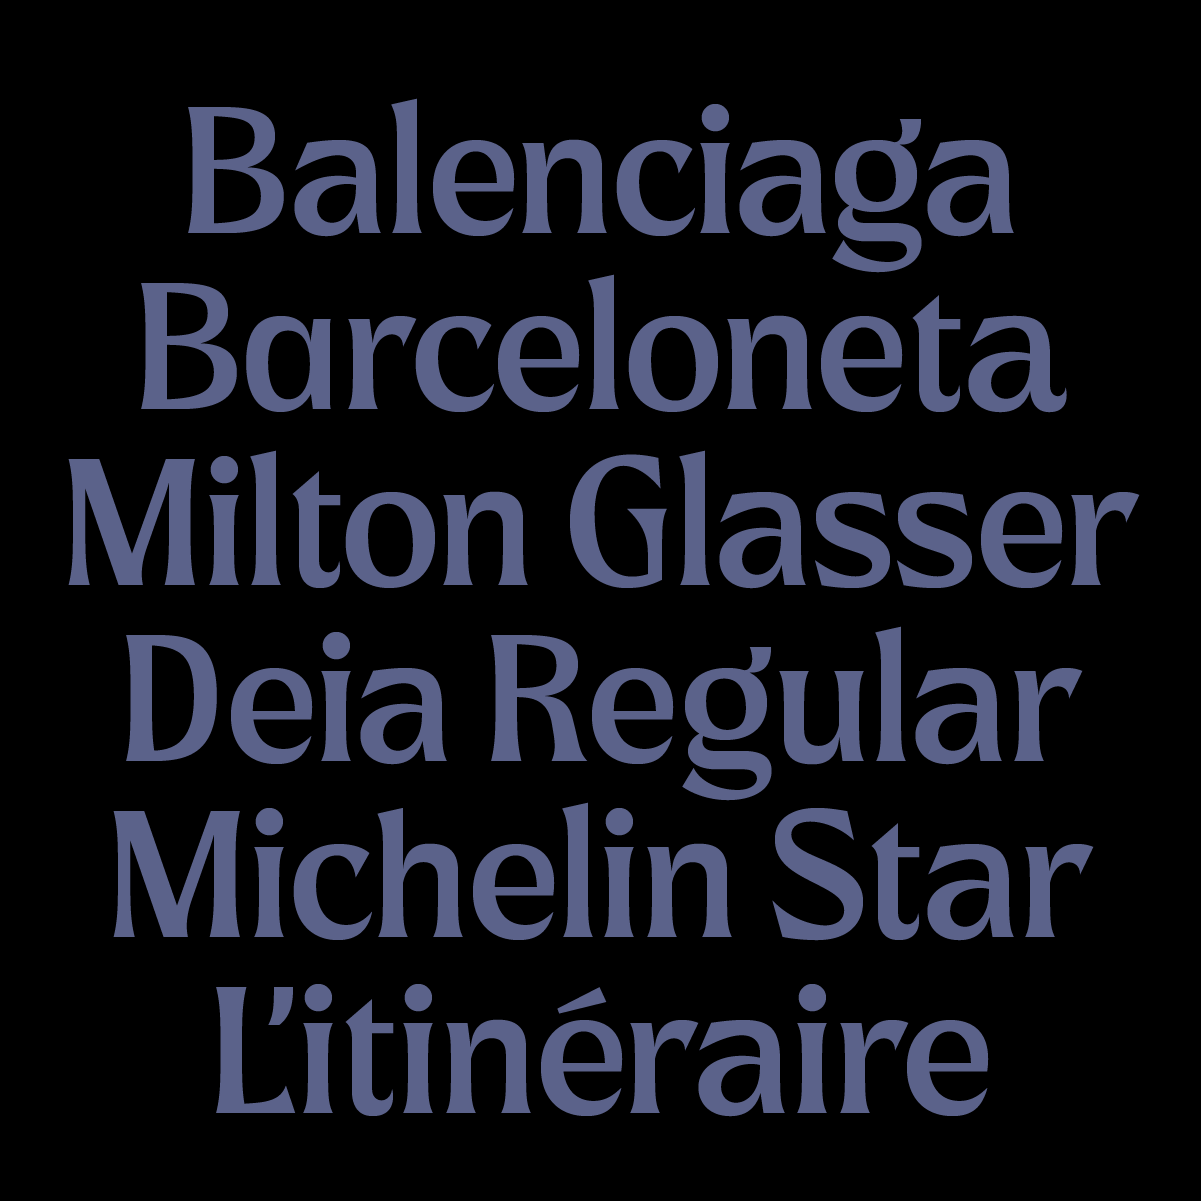 Deia, a new typeface by Andrei Robu for Typeverything.com